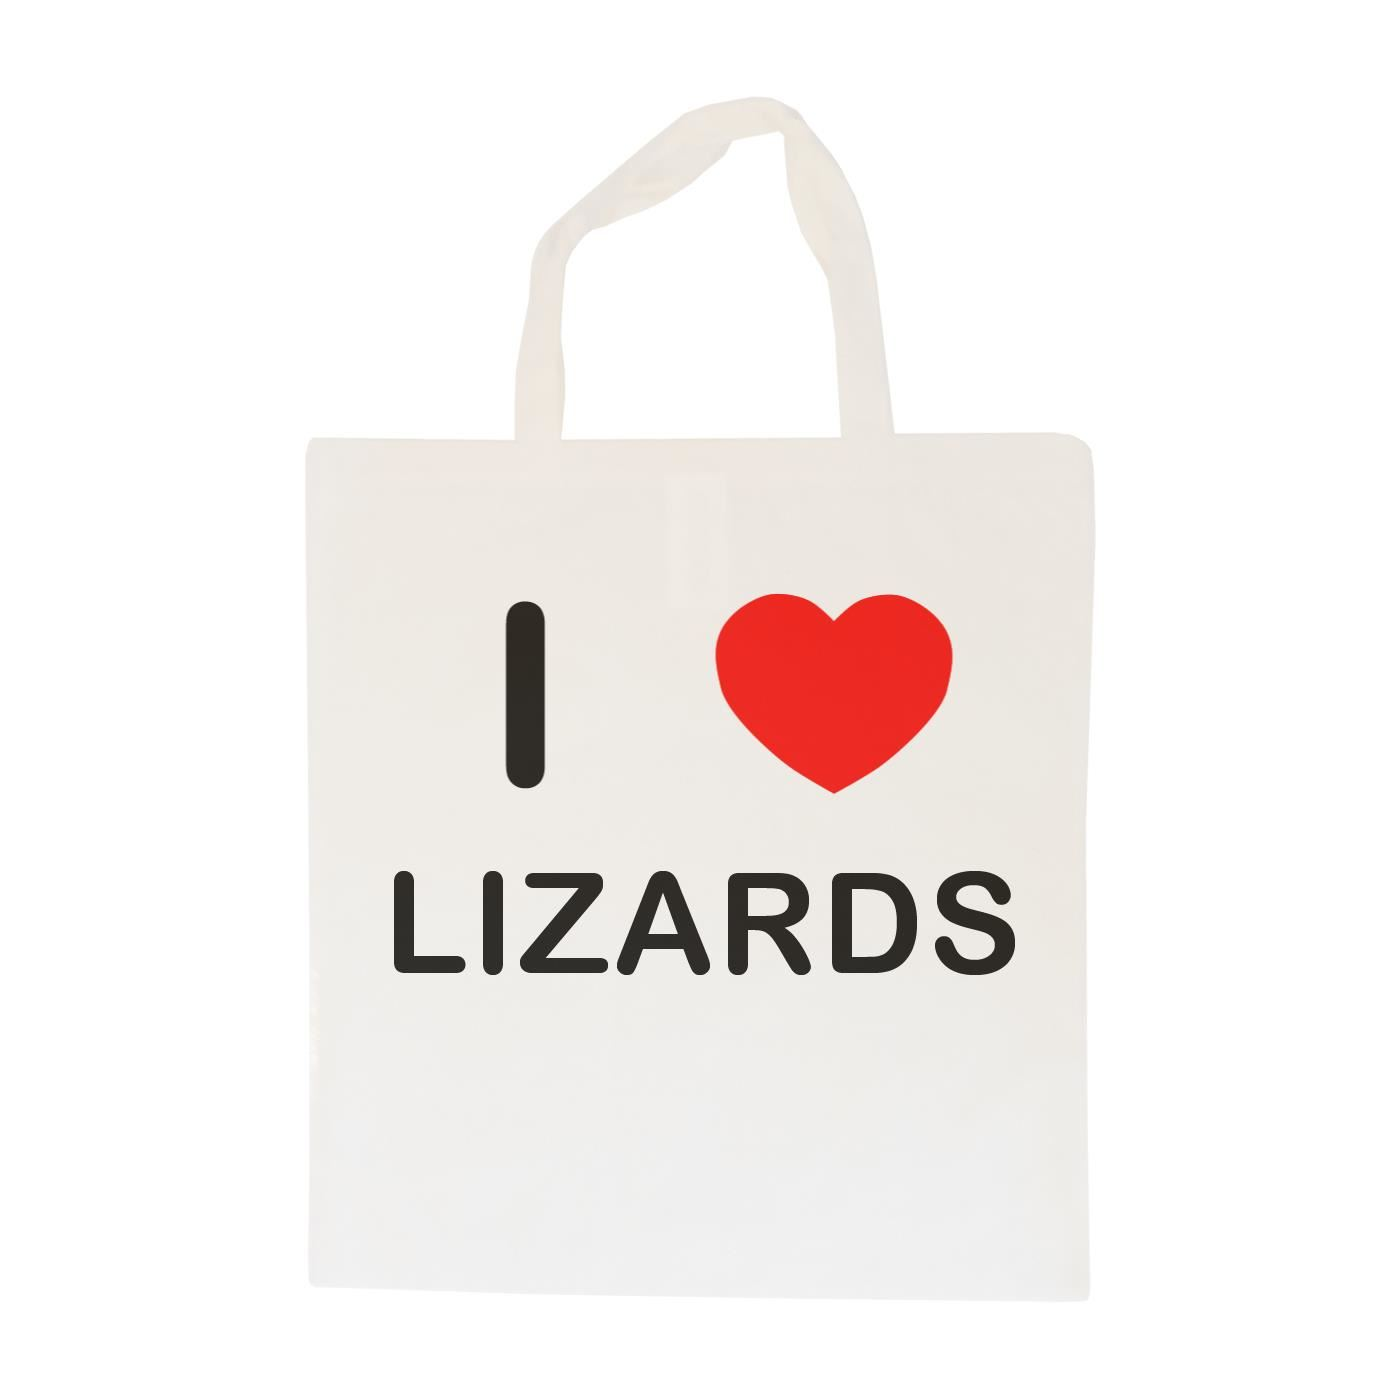 I Love Lizards - Cotton Bag | Size choice Tote, Shopper or Sling